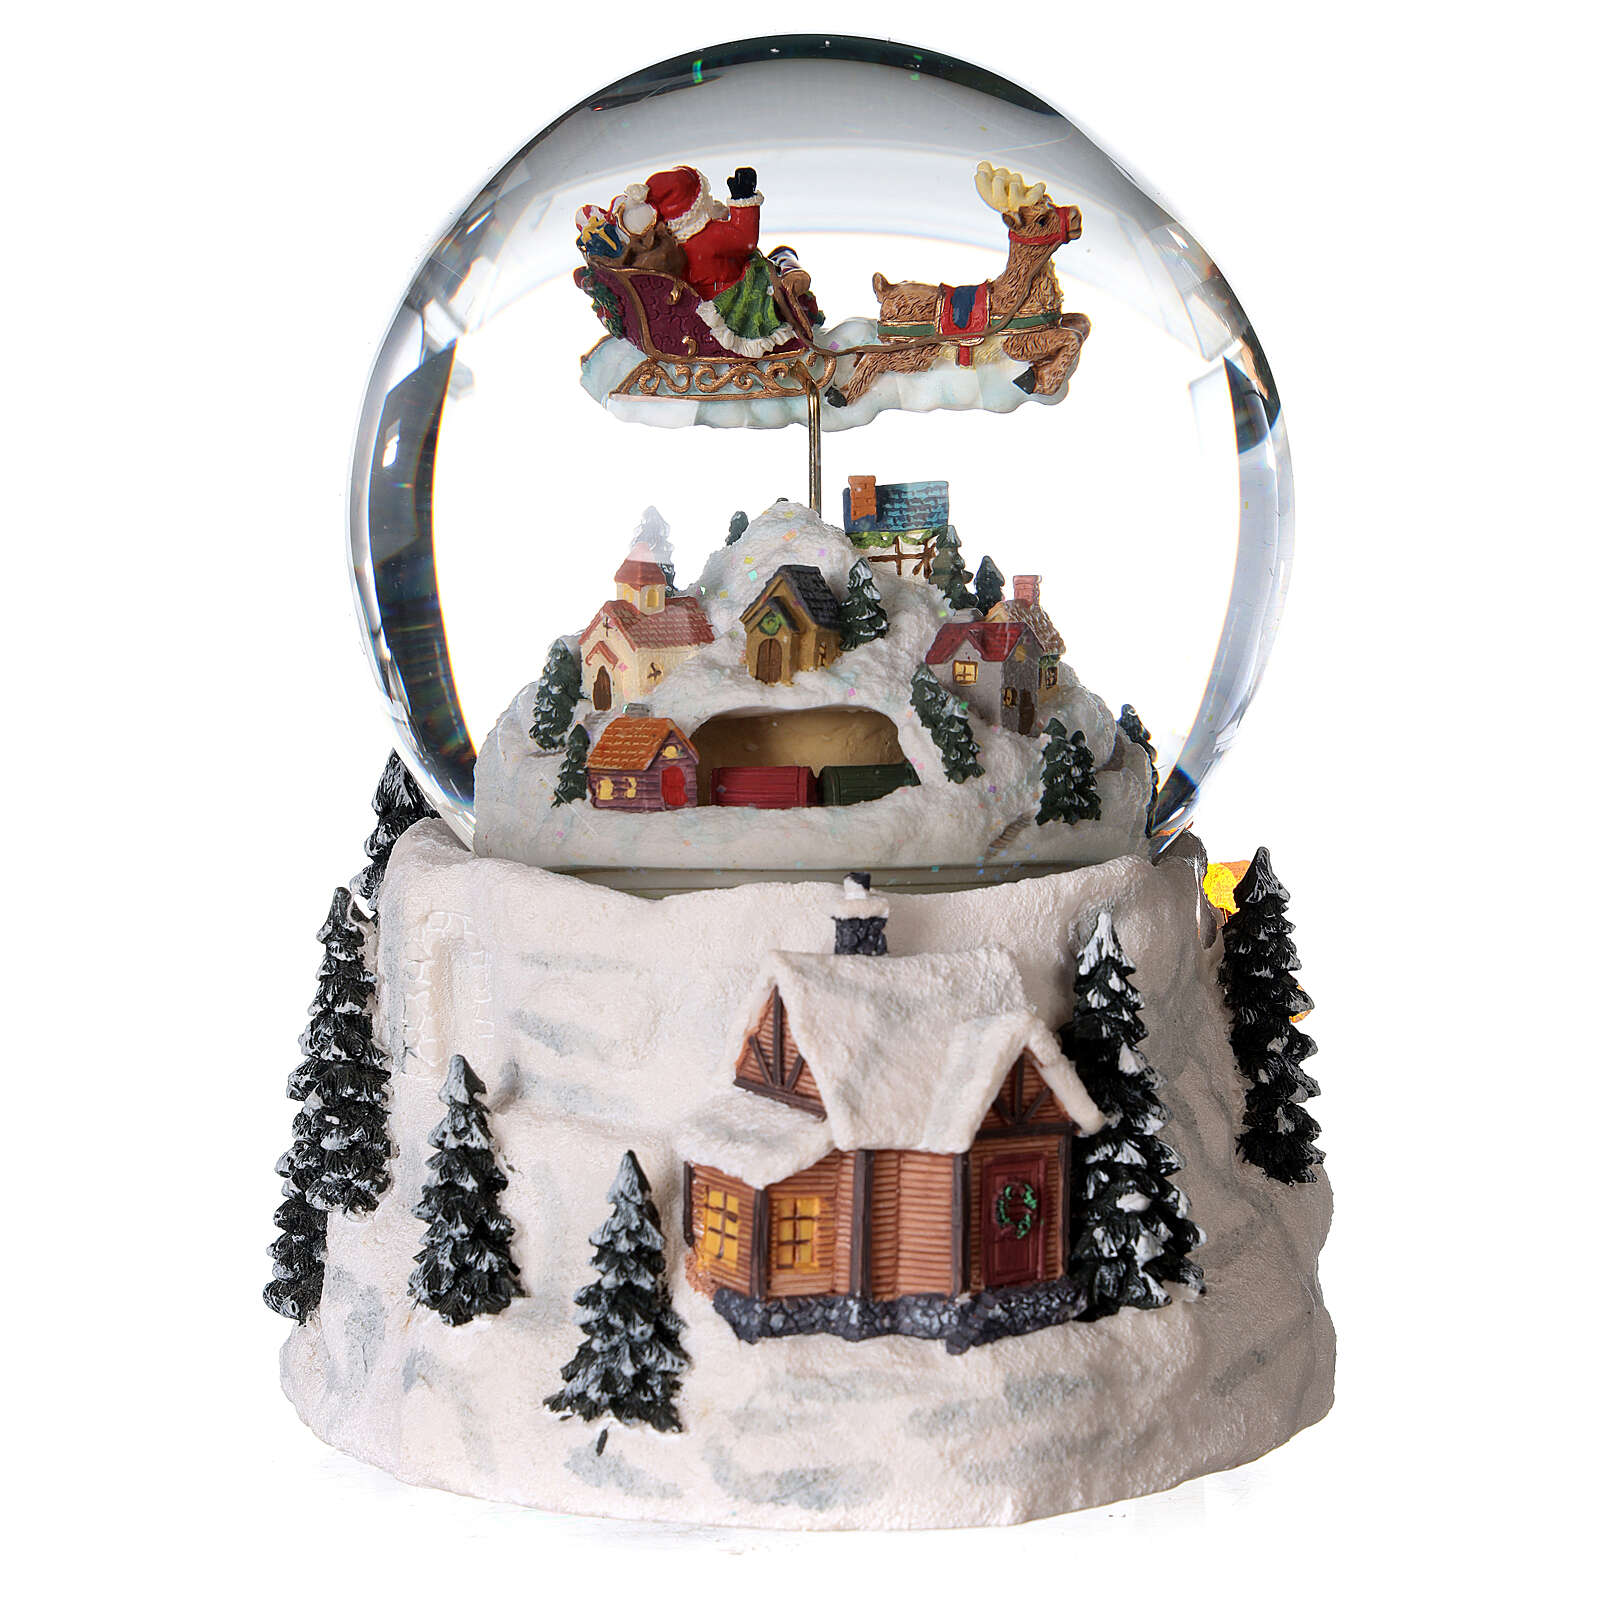 Glass ball snow glitter Christmas village with river 3